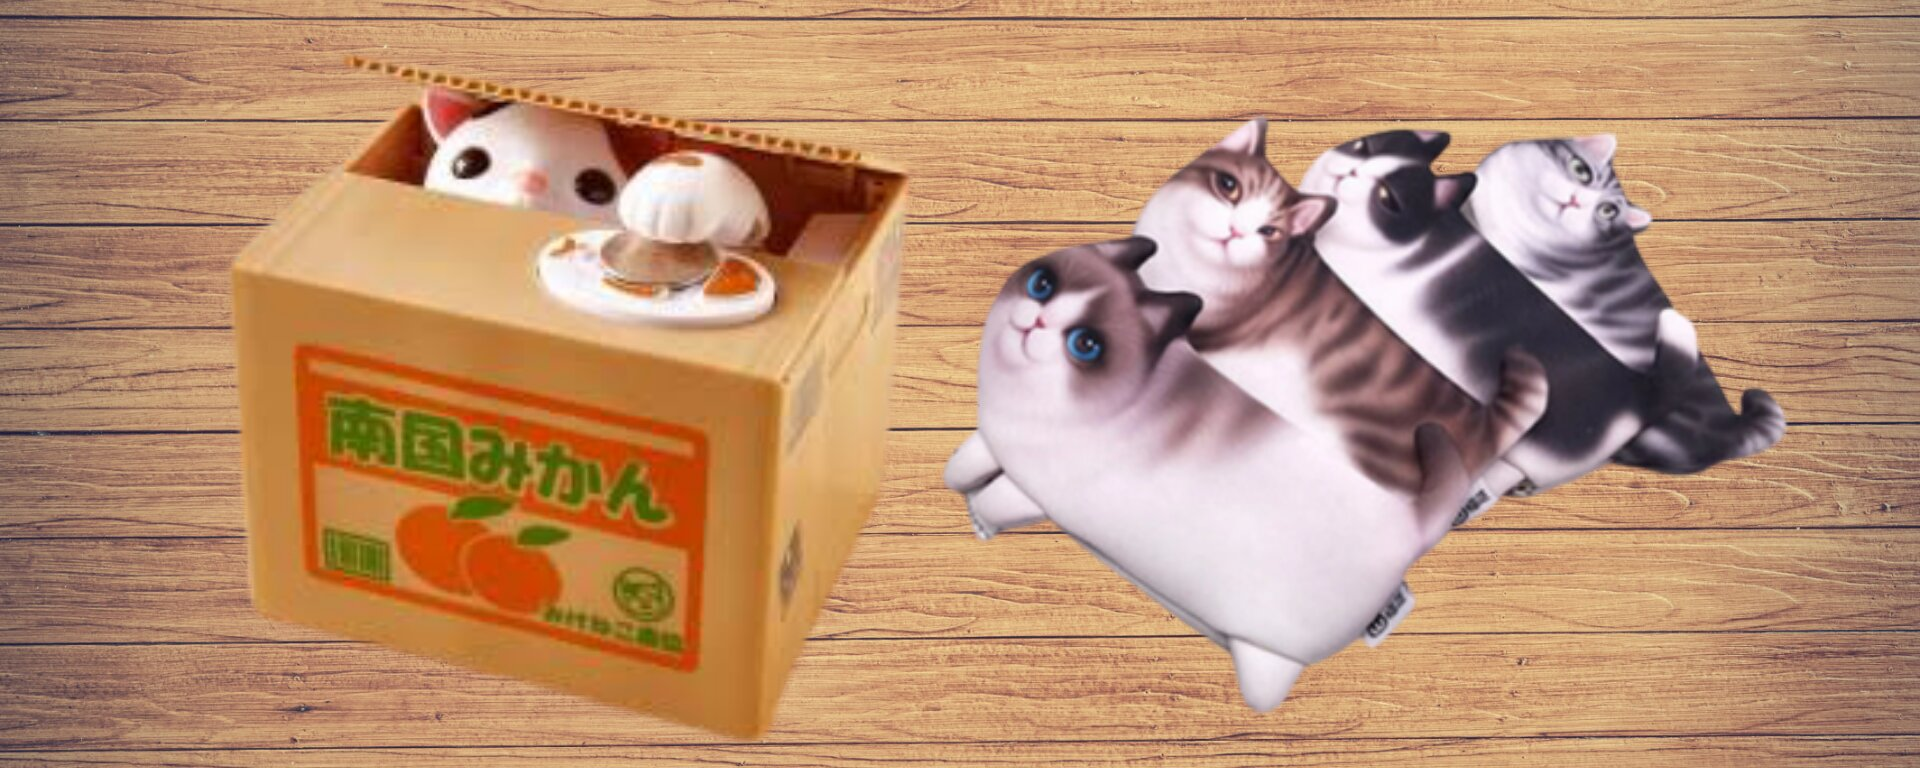 cute kawaii cat items gifts